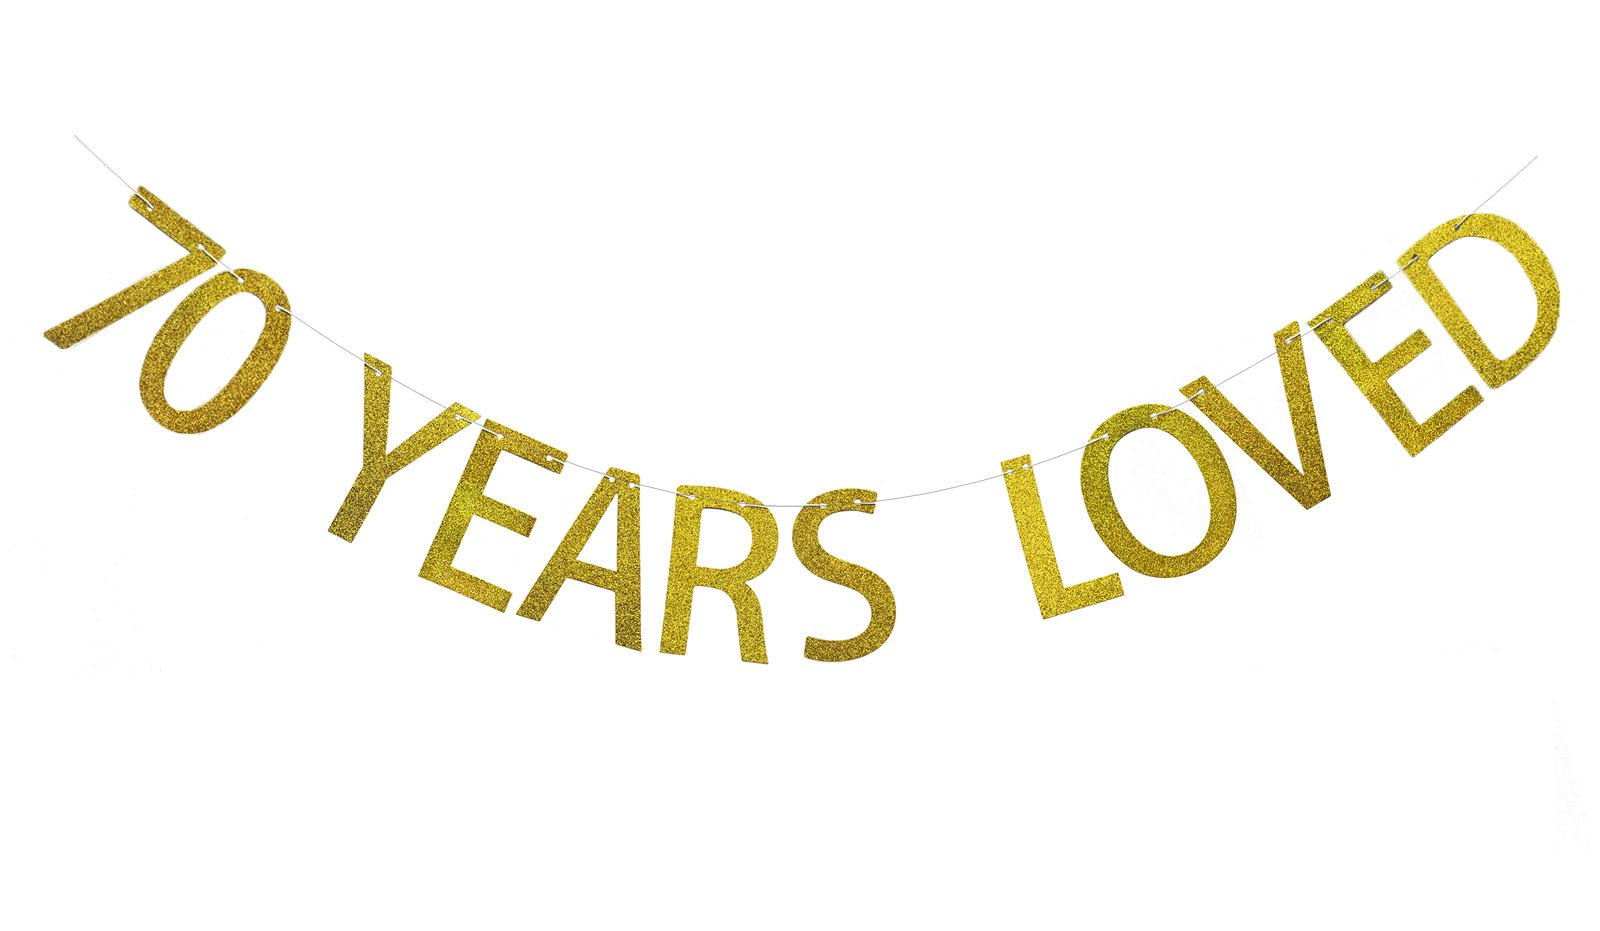 Fecedy Gold 70 Years Loved Banner Glitter Letters For 70th Birthday Party Decorations